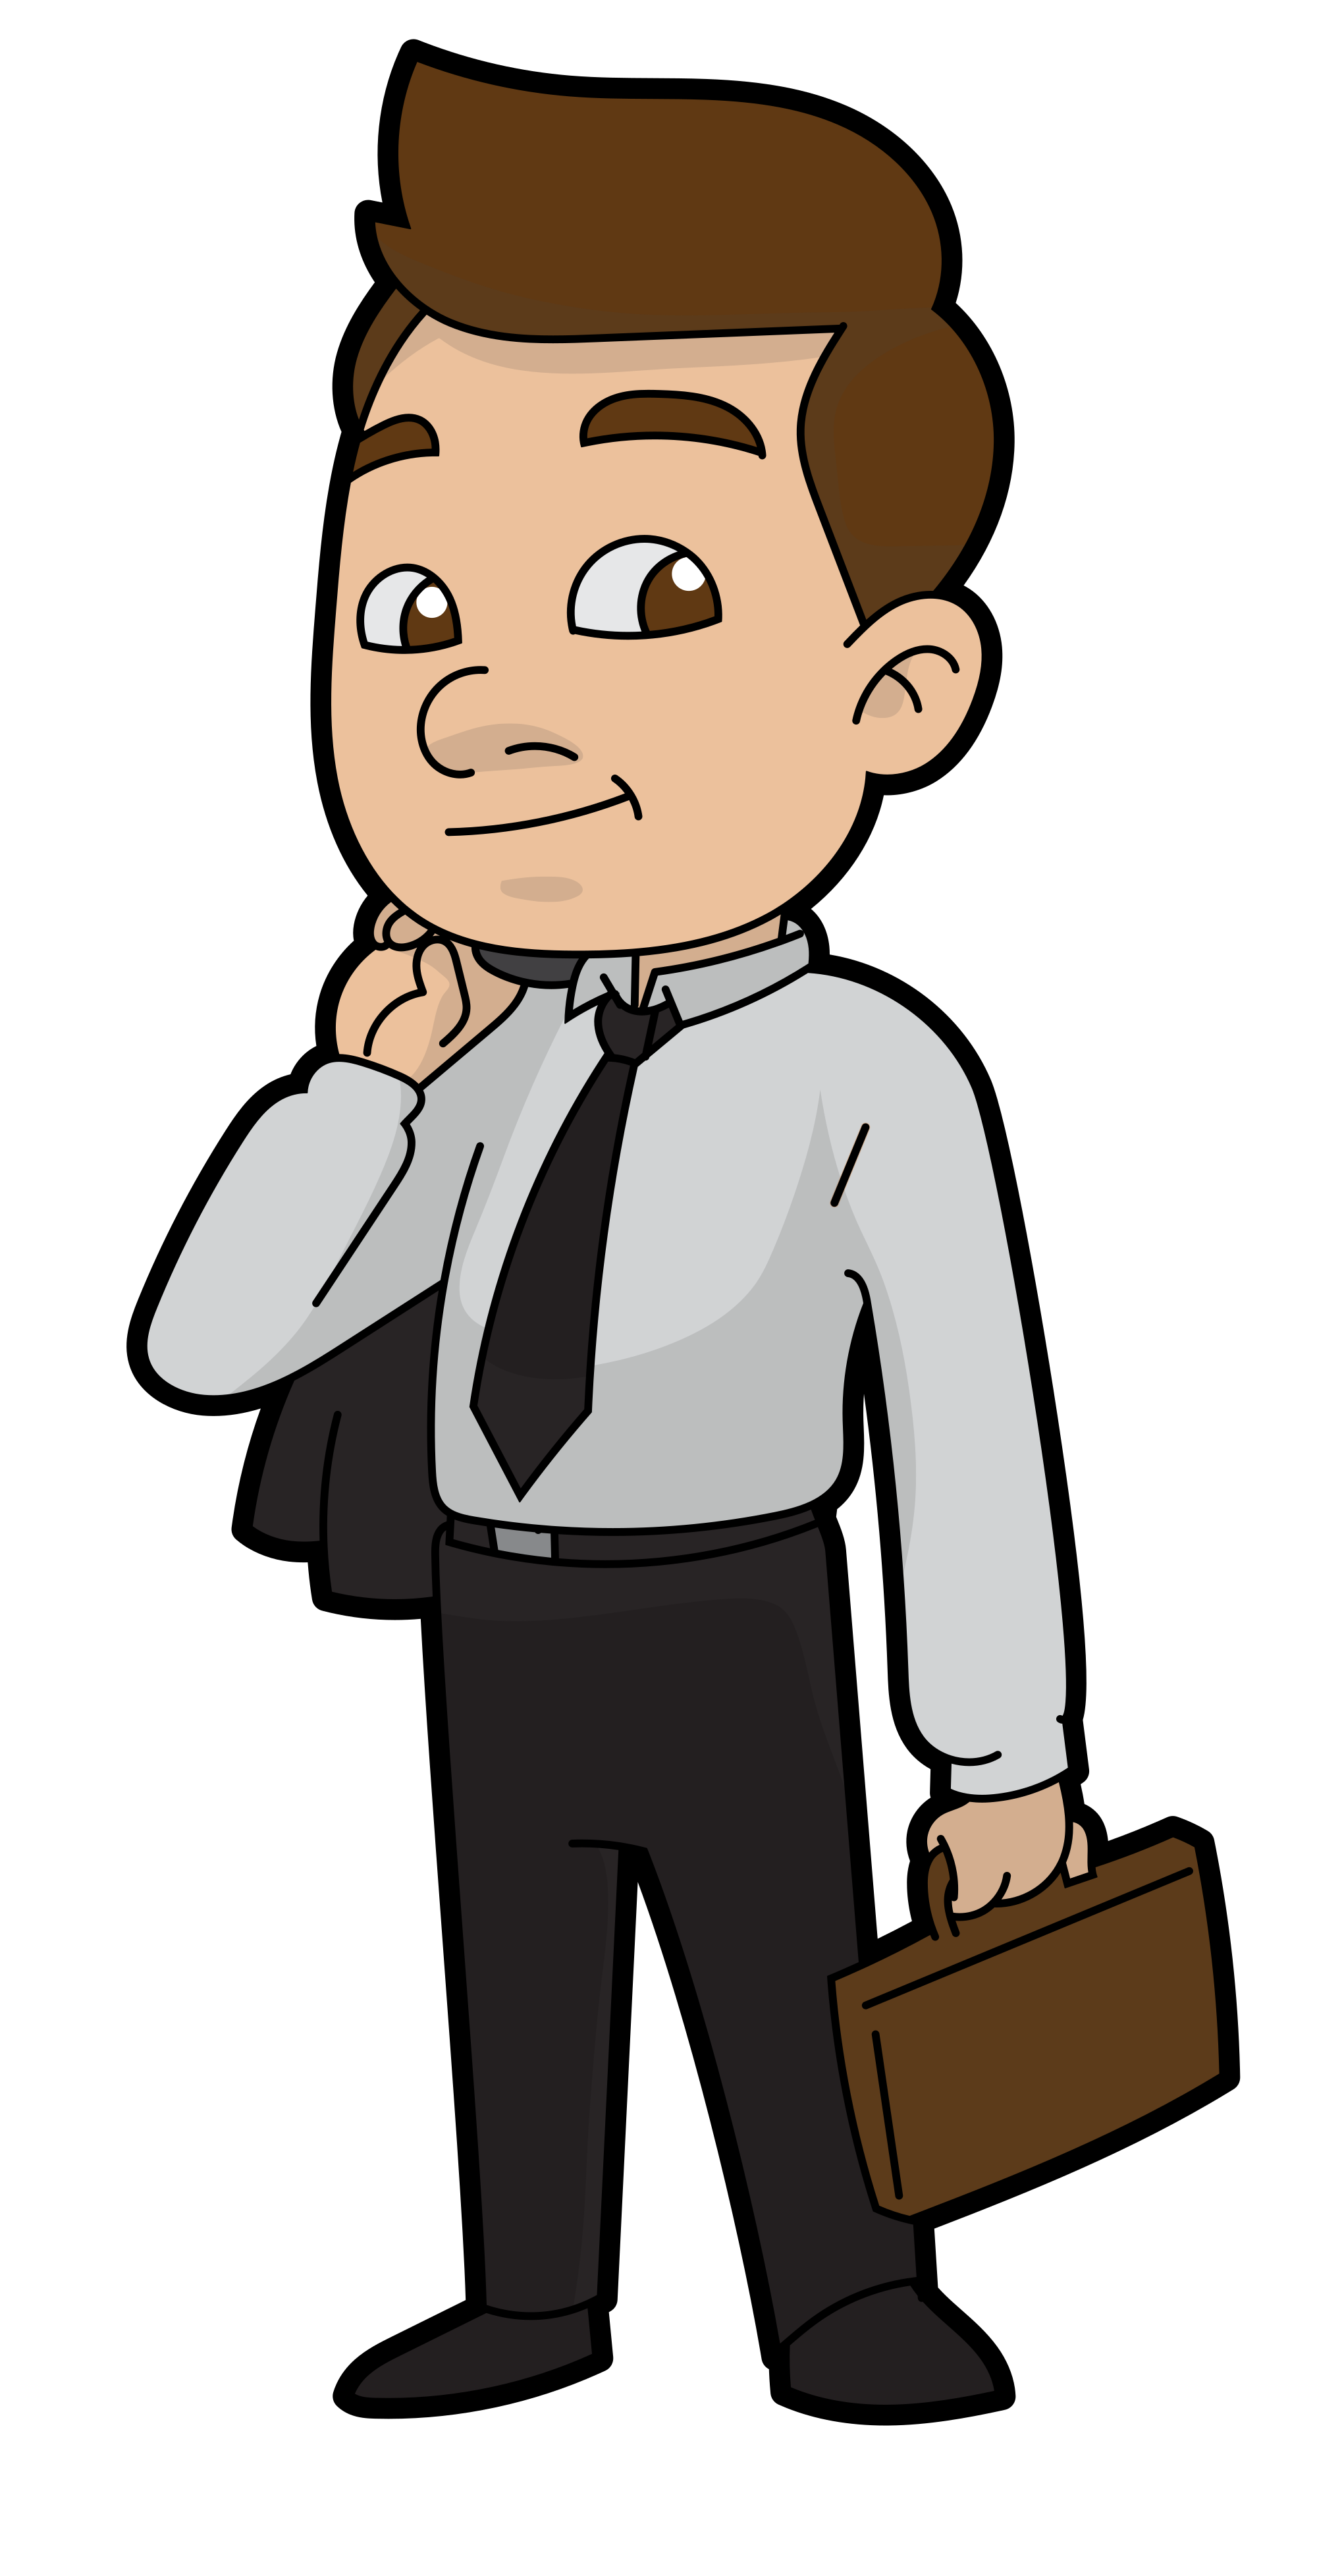 Cartoon businessman png. File ready for work